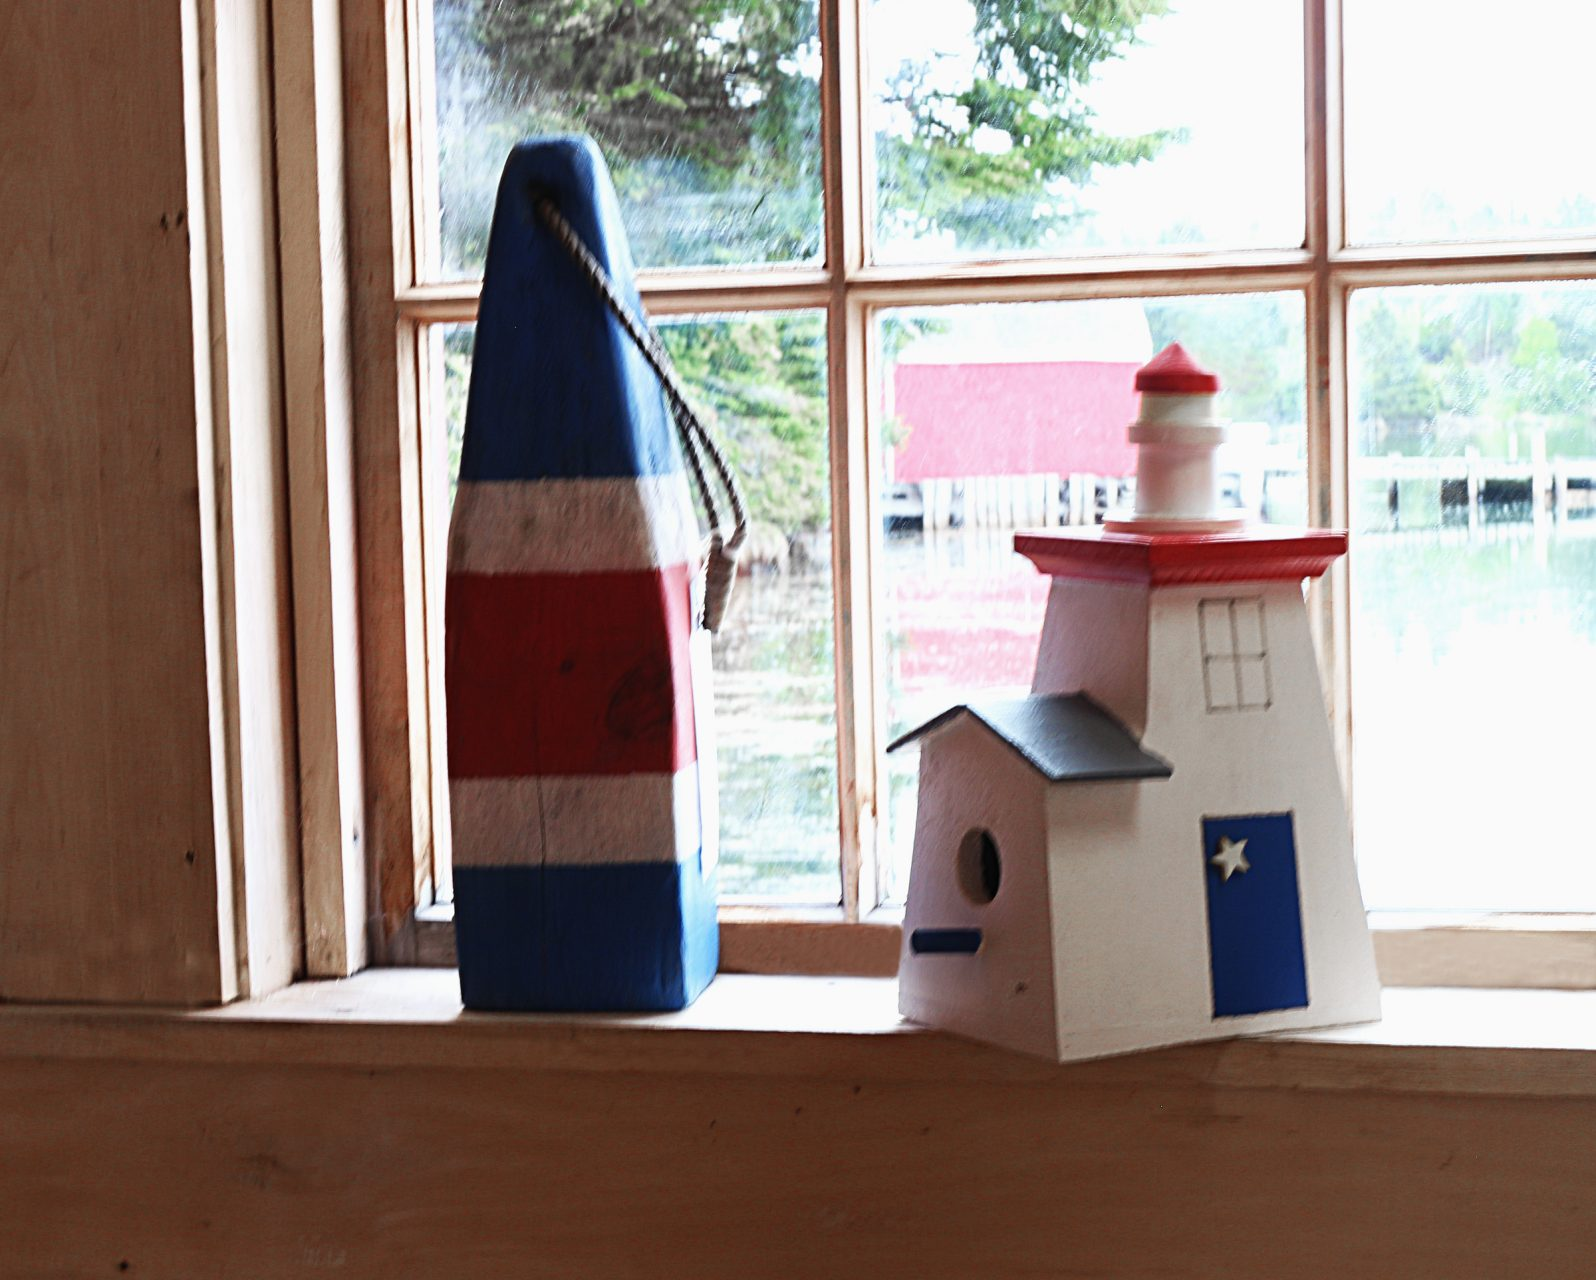 lighthouse birdhouse, $25. , small buoy, $25.